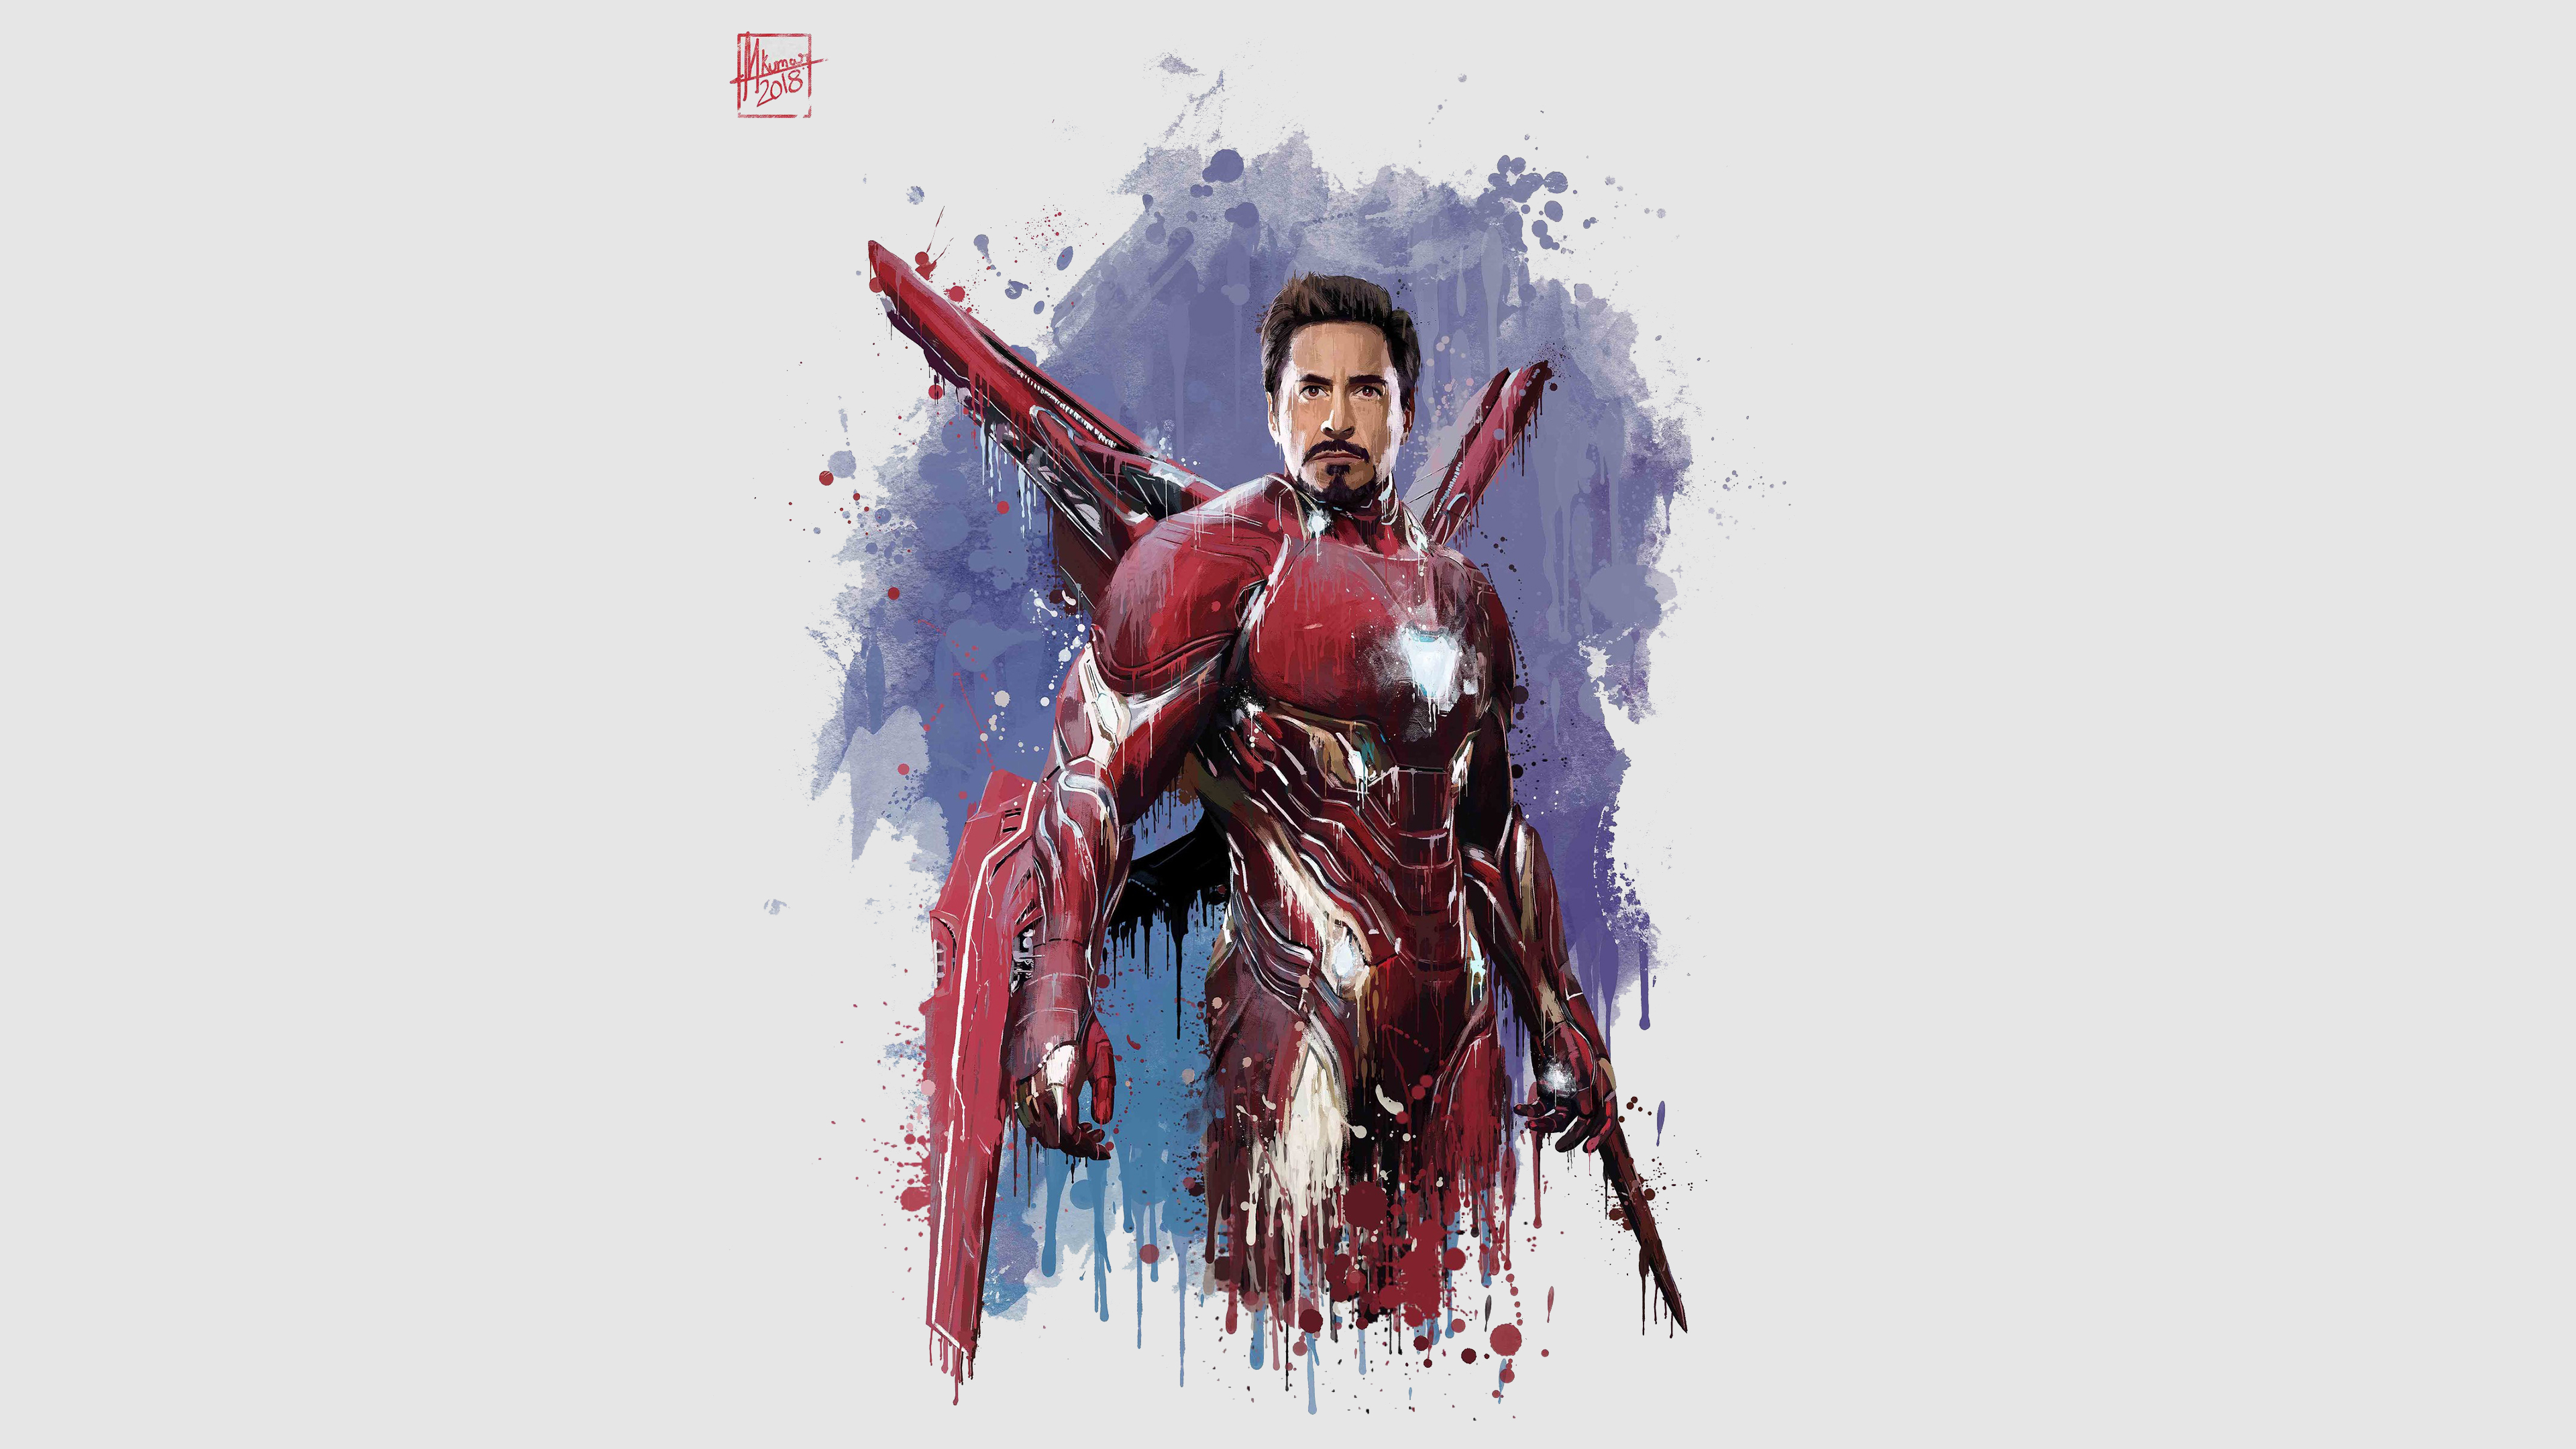 Iron man new suit for avengers infinity war hd movies 4k - New spiderman movie wallpaper ...